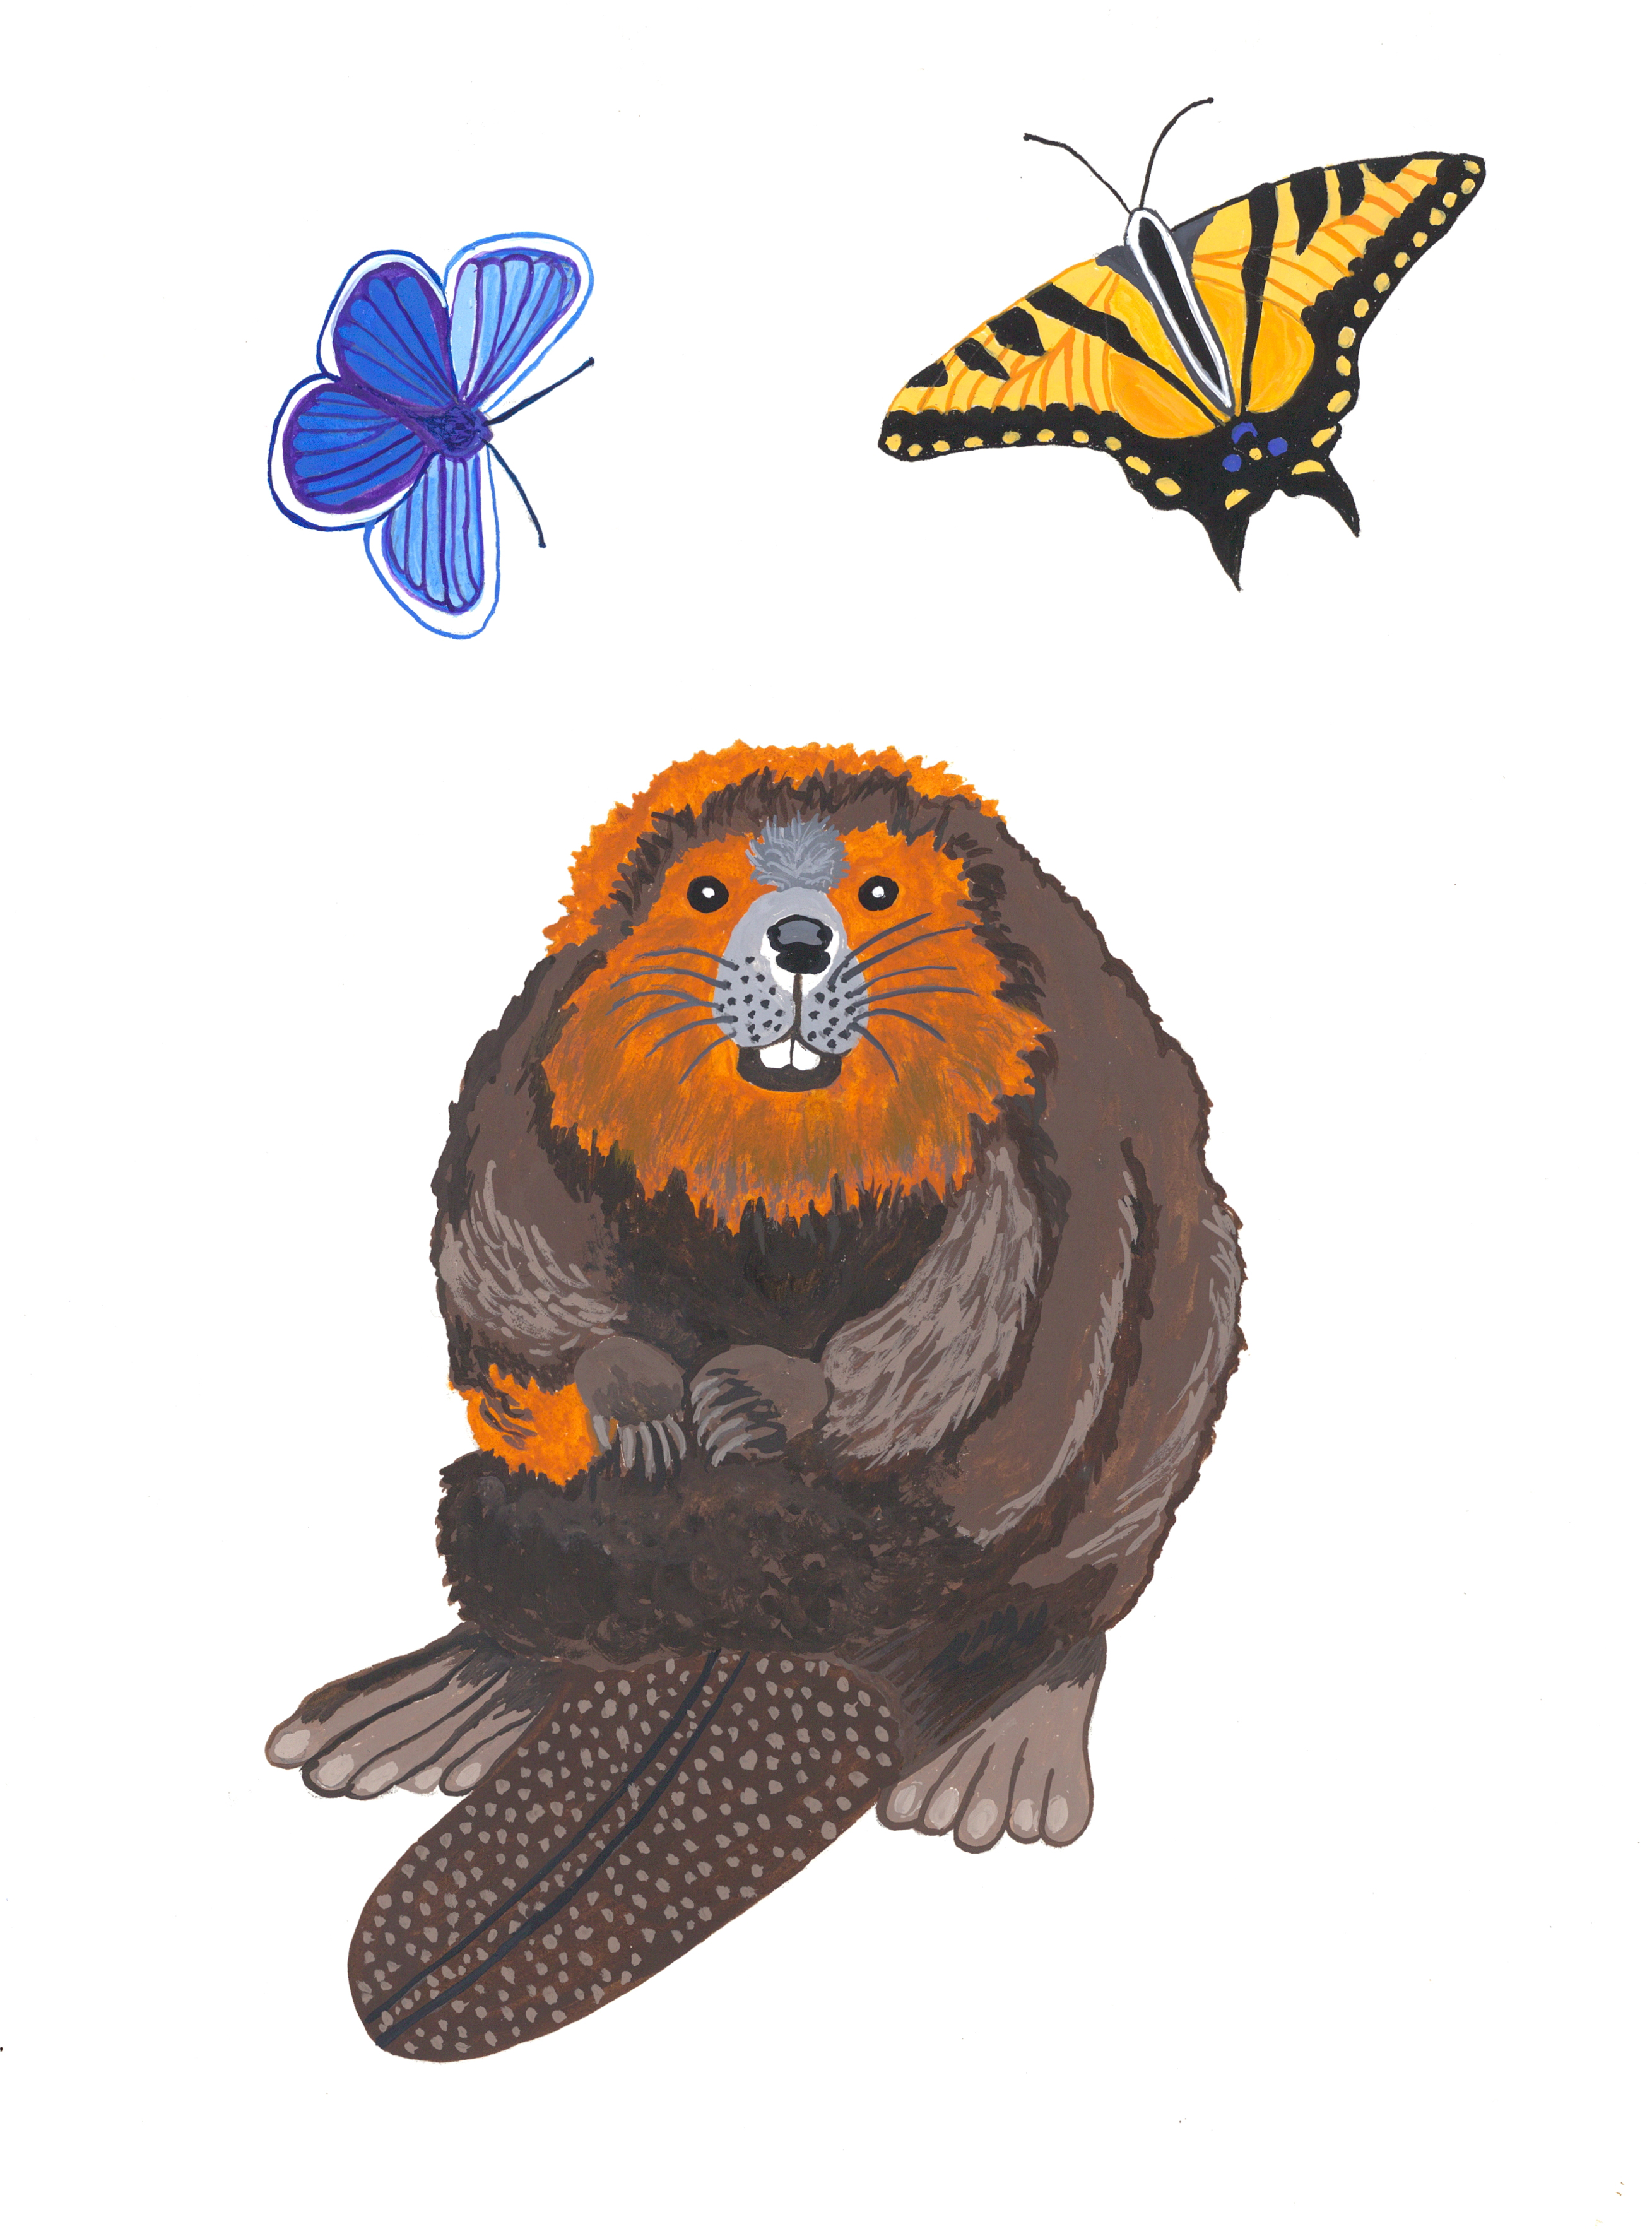 Beaver and Butterflies, Margo Greeve